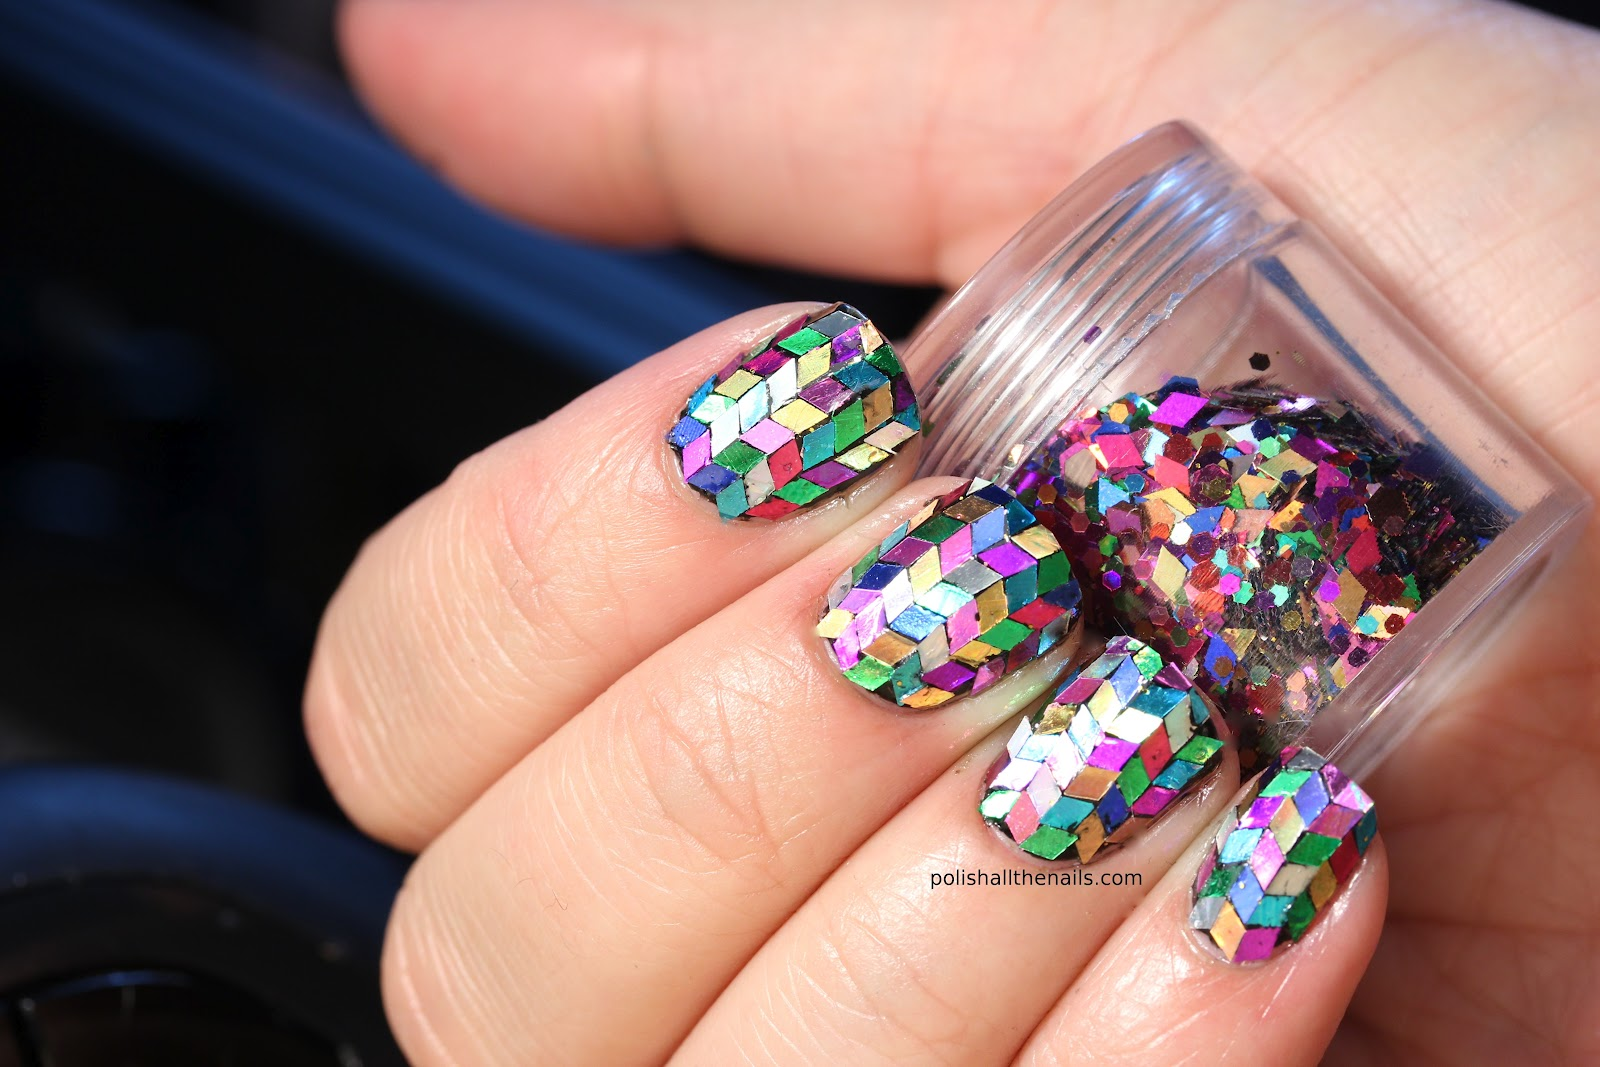 Awesome nail polish with diamond 2015 reasabaidhean the captivating awesome nail polish with diamond pics prinsesfo Choice Image